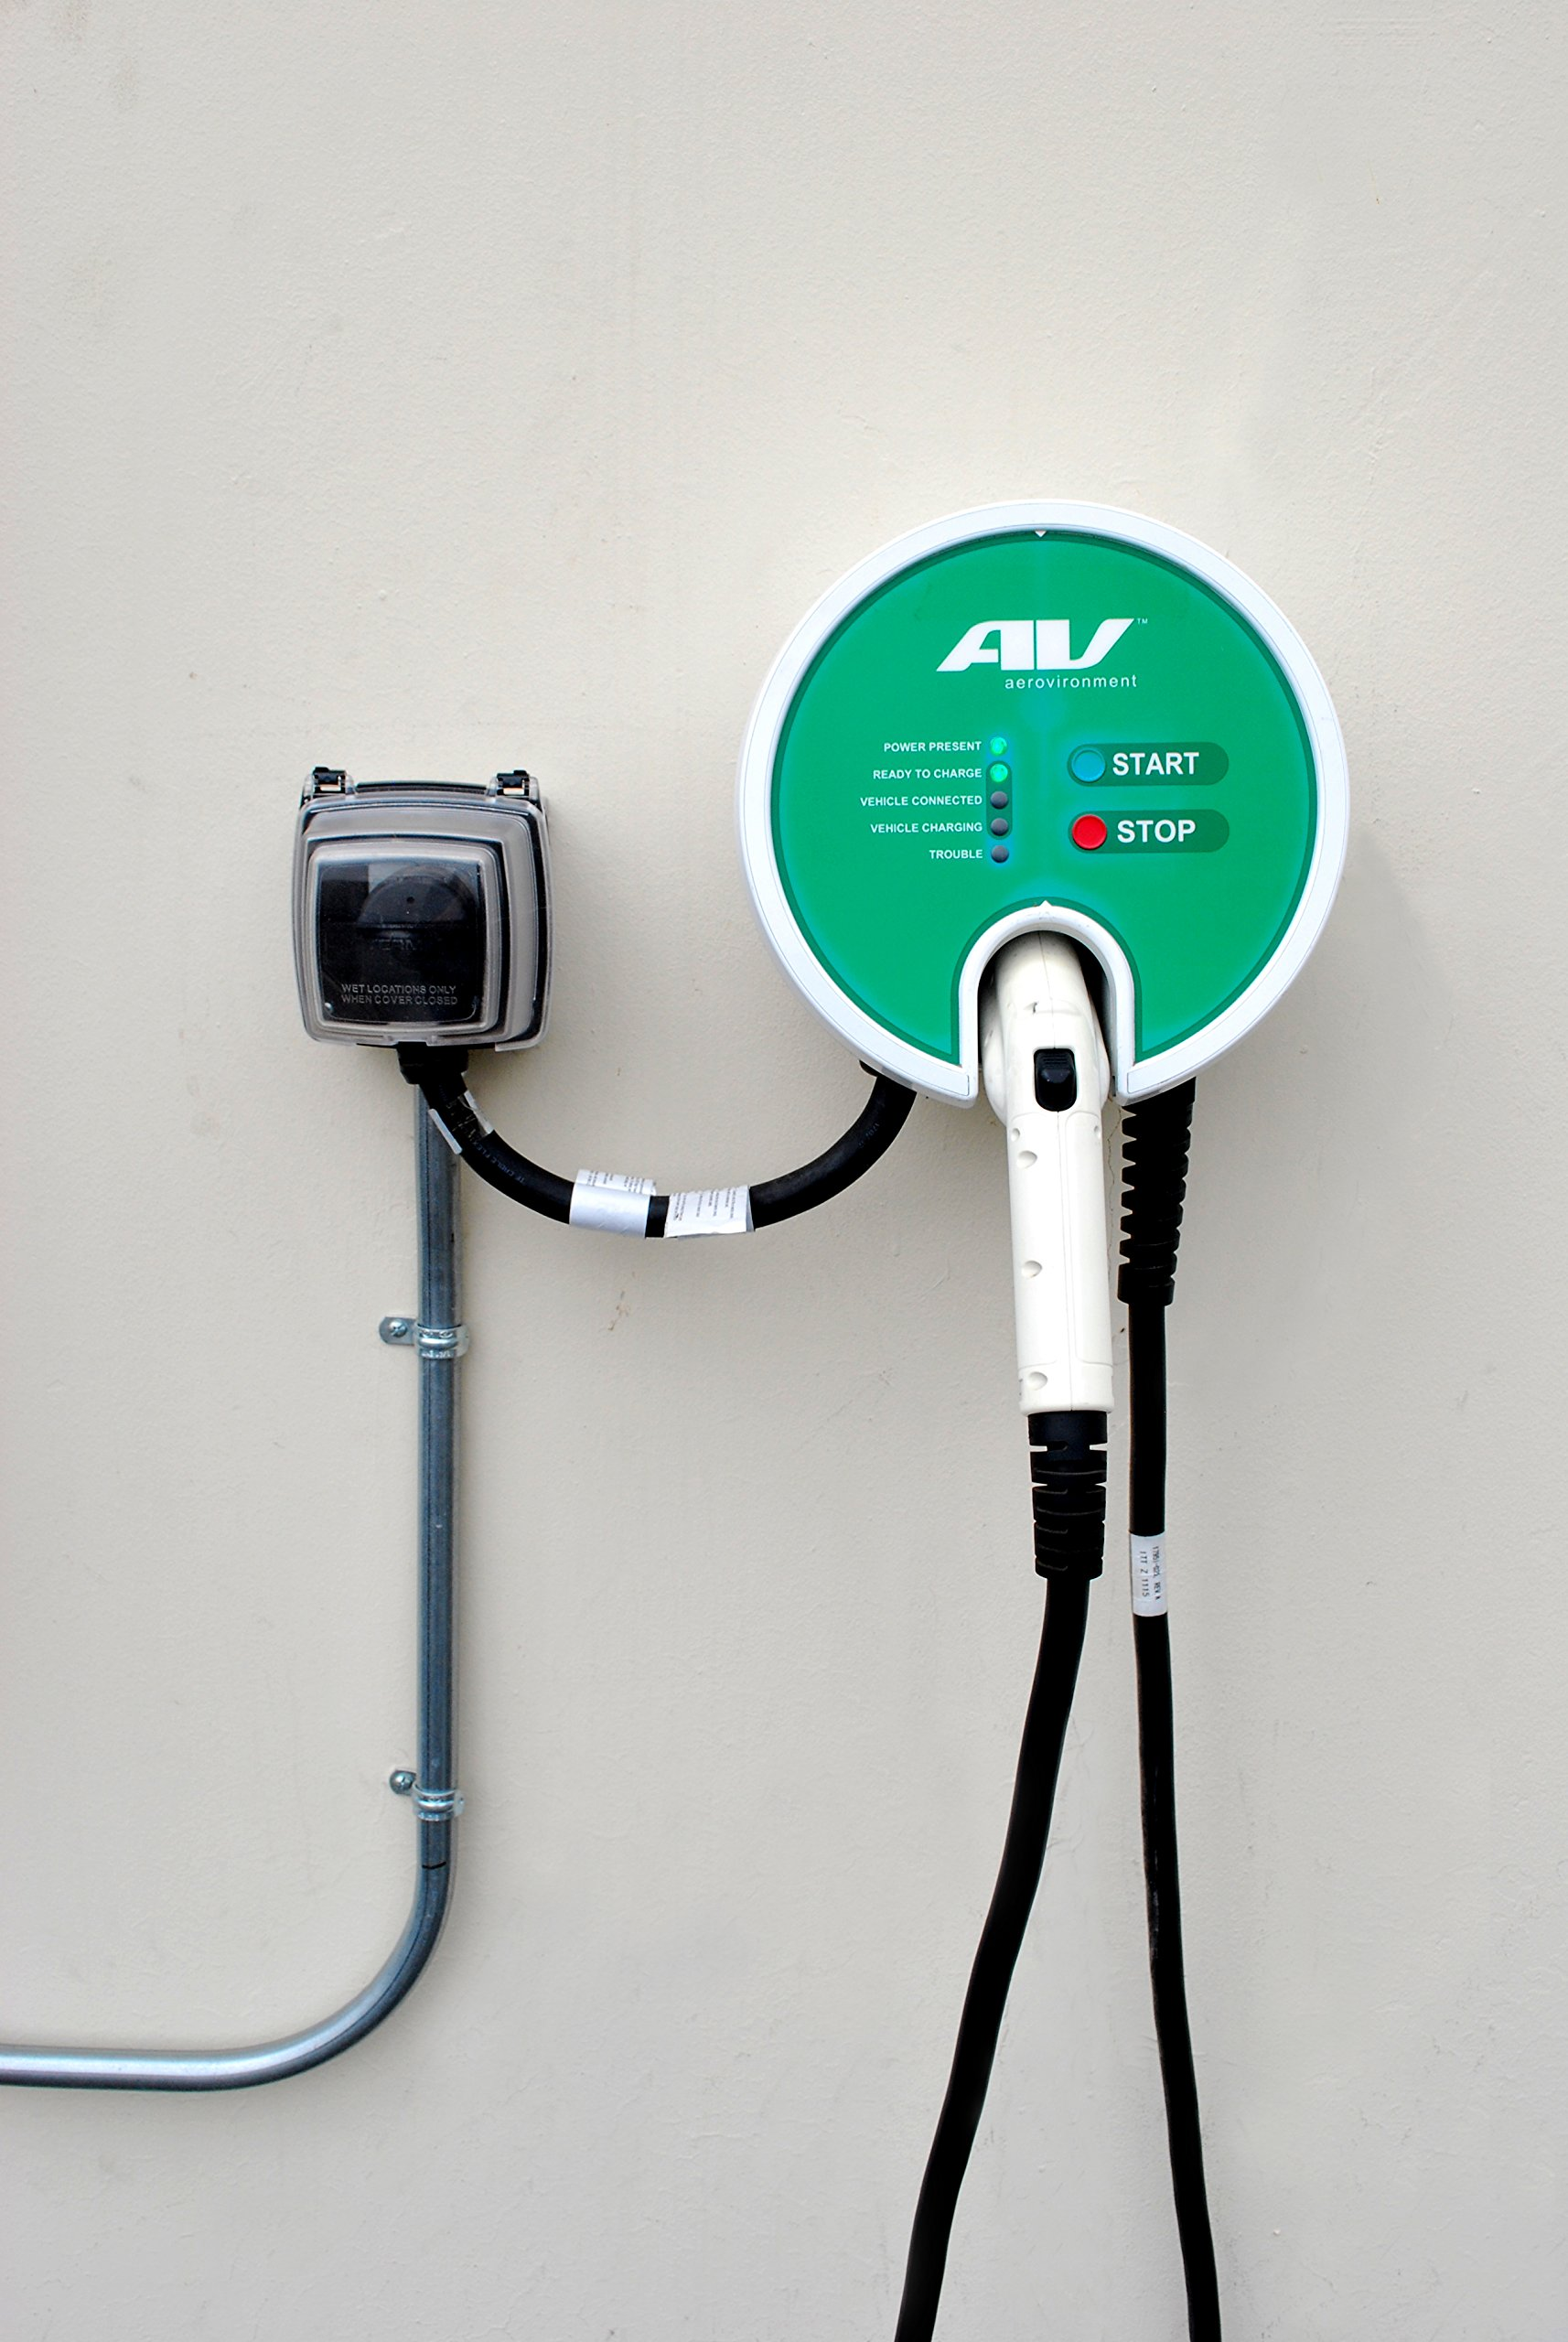 AeroVironment EV Charger: Plug-In, 25' cable, 32A, 7.7kW - SPECIAL PRICE PROMOTION! by AeroVironment (Image #4)